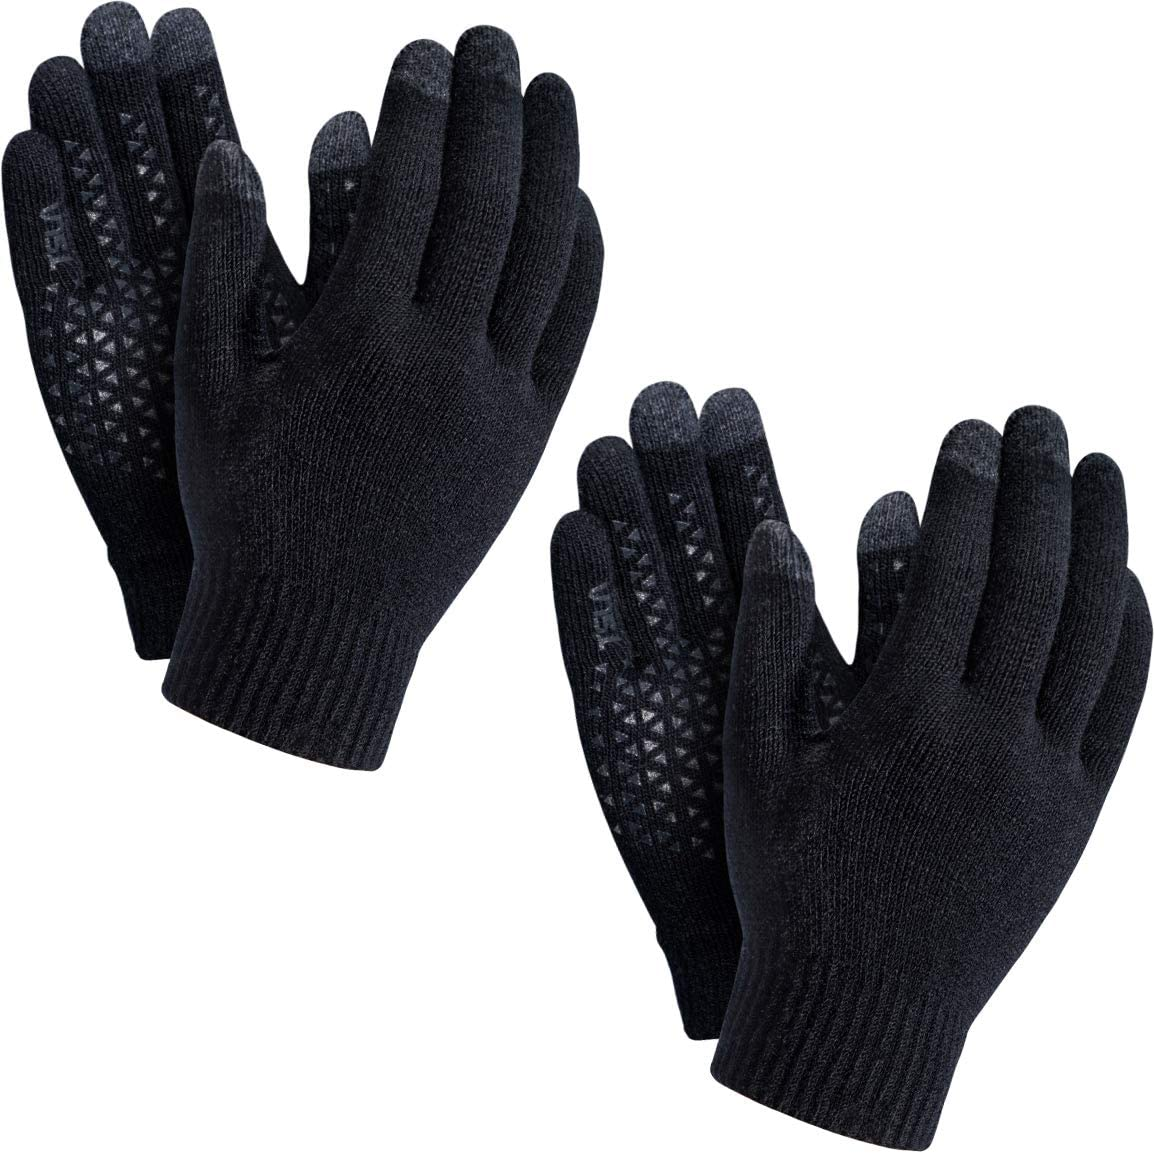 TSLA 1 or 2 Pack Men and Women Touch Screen Winter Gloves, Texting Anti-Slip Thermal Warm Knit Gloves, Cold Weather Running Gloves